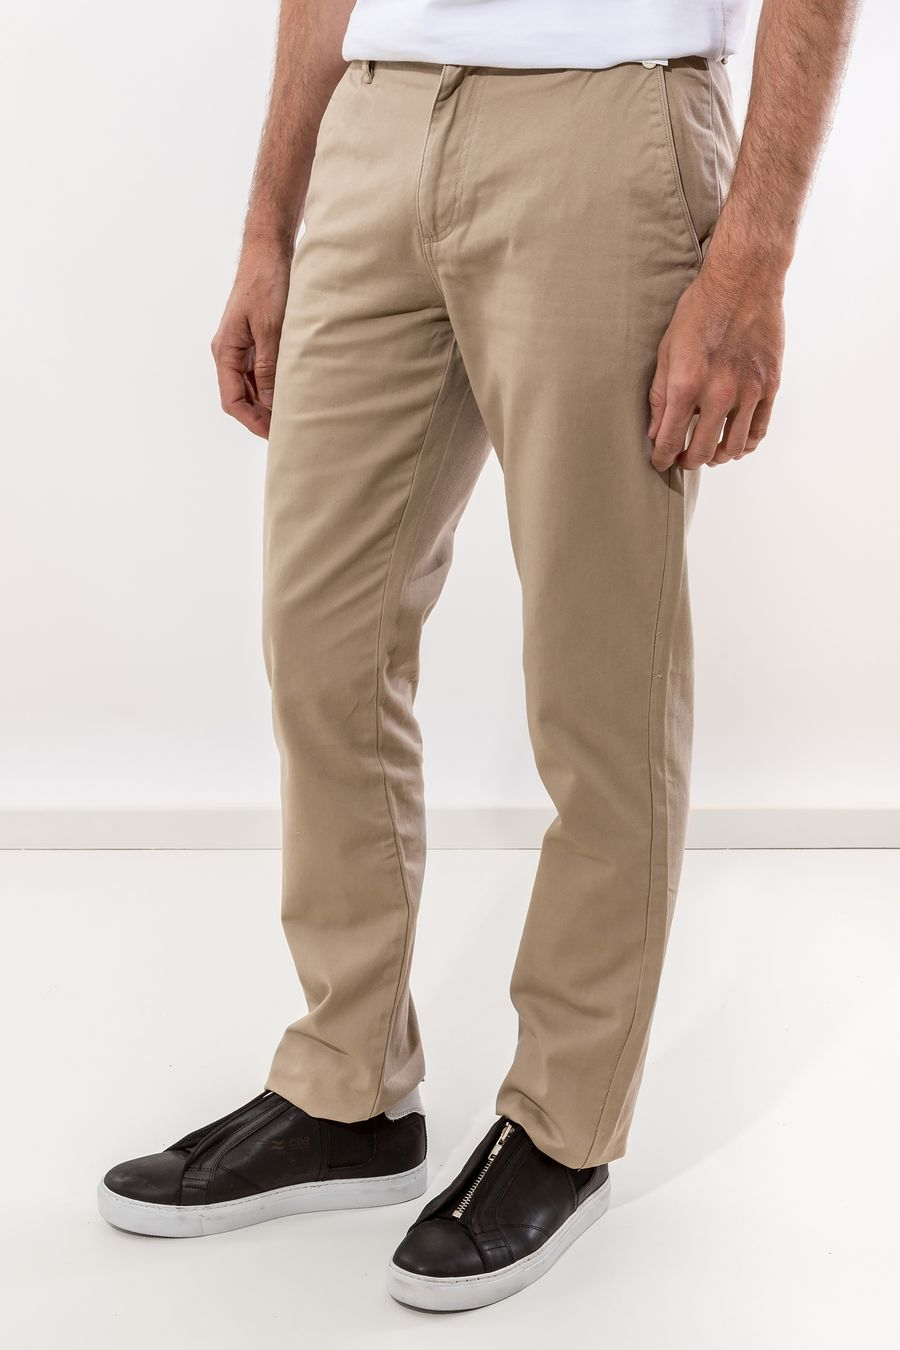 PANTALON-CHINO-REGULAR